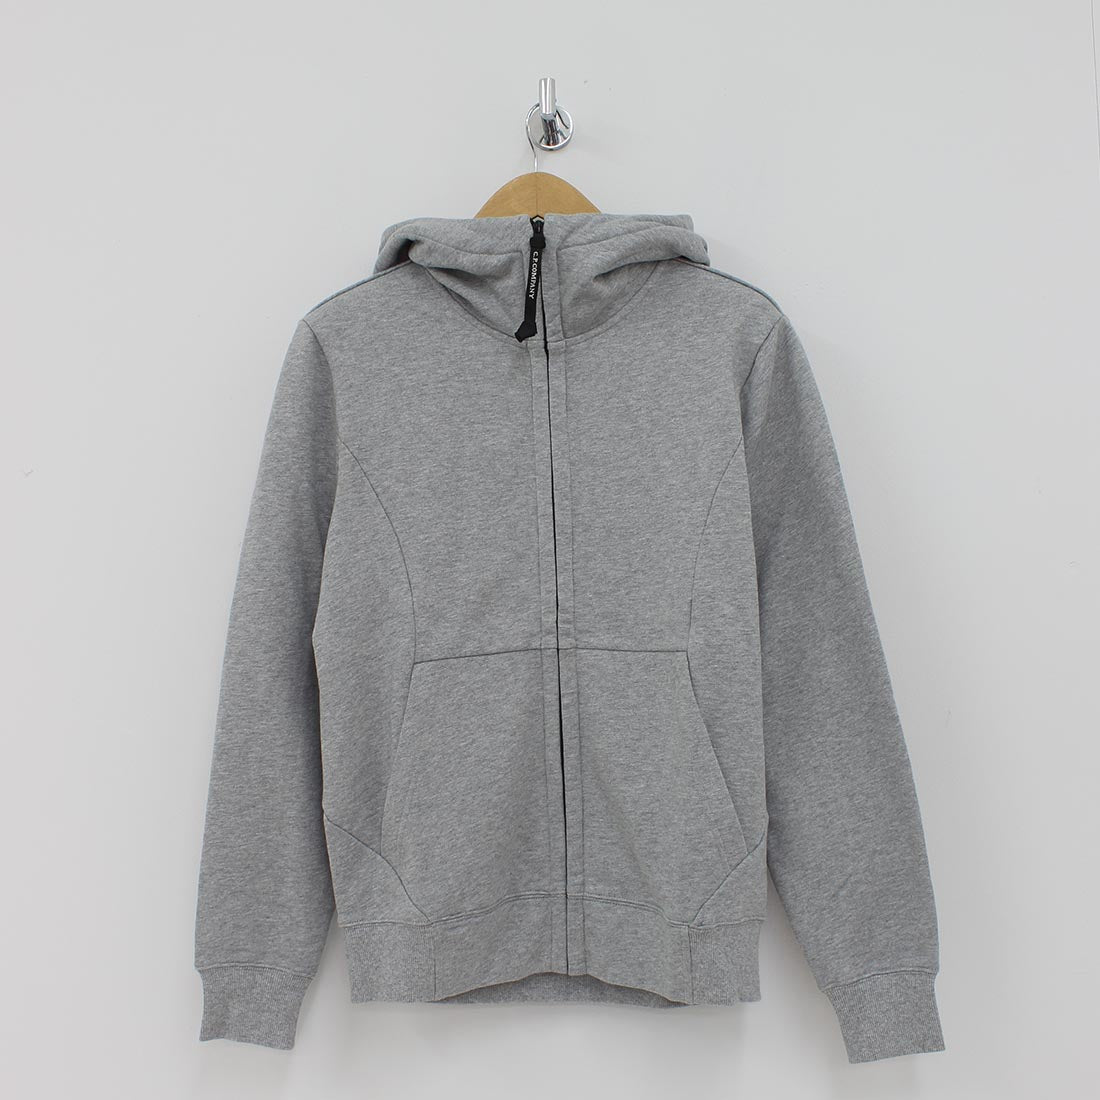 CP Company Lens Hooded Sweat Shirt Grey